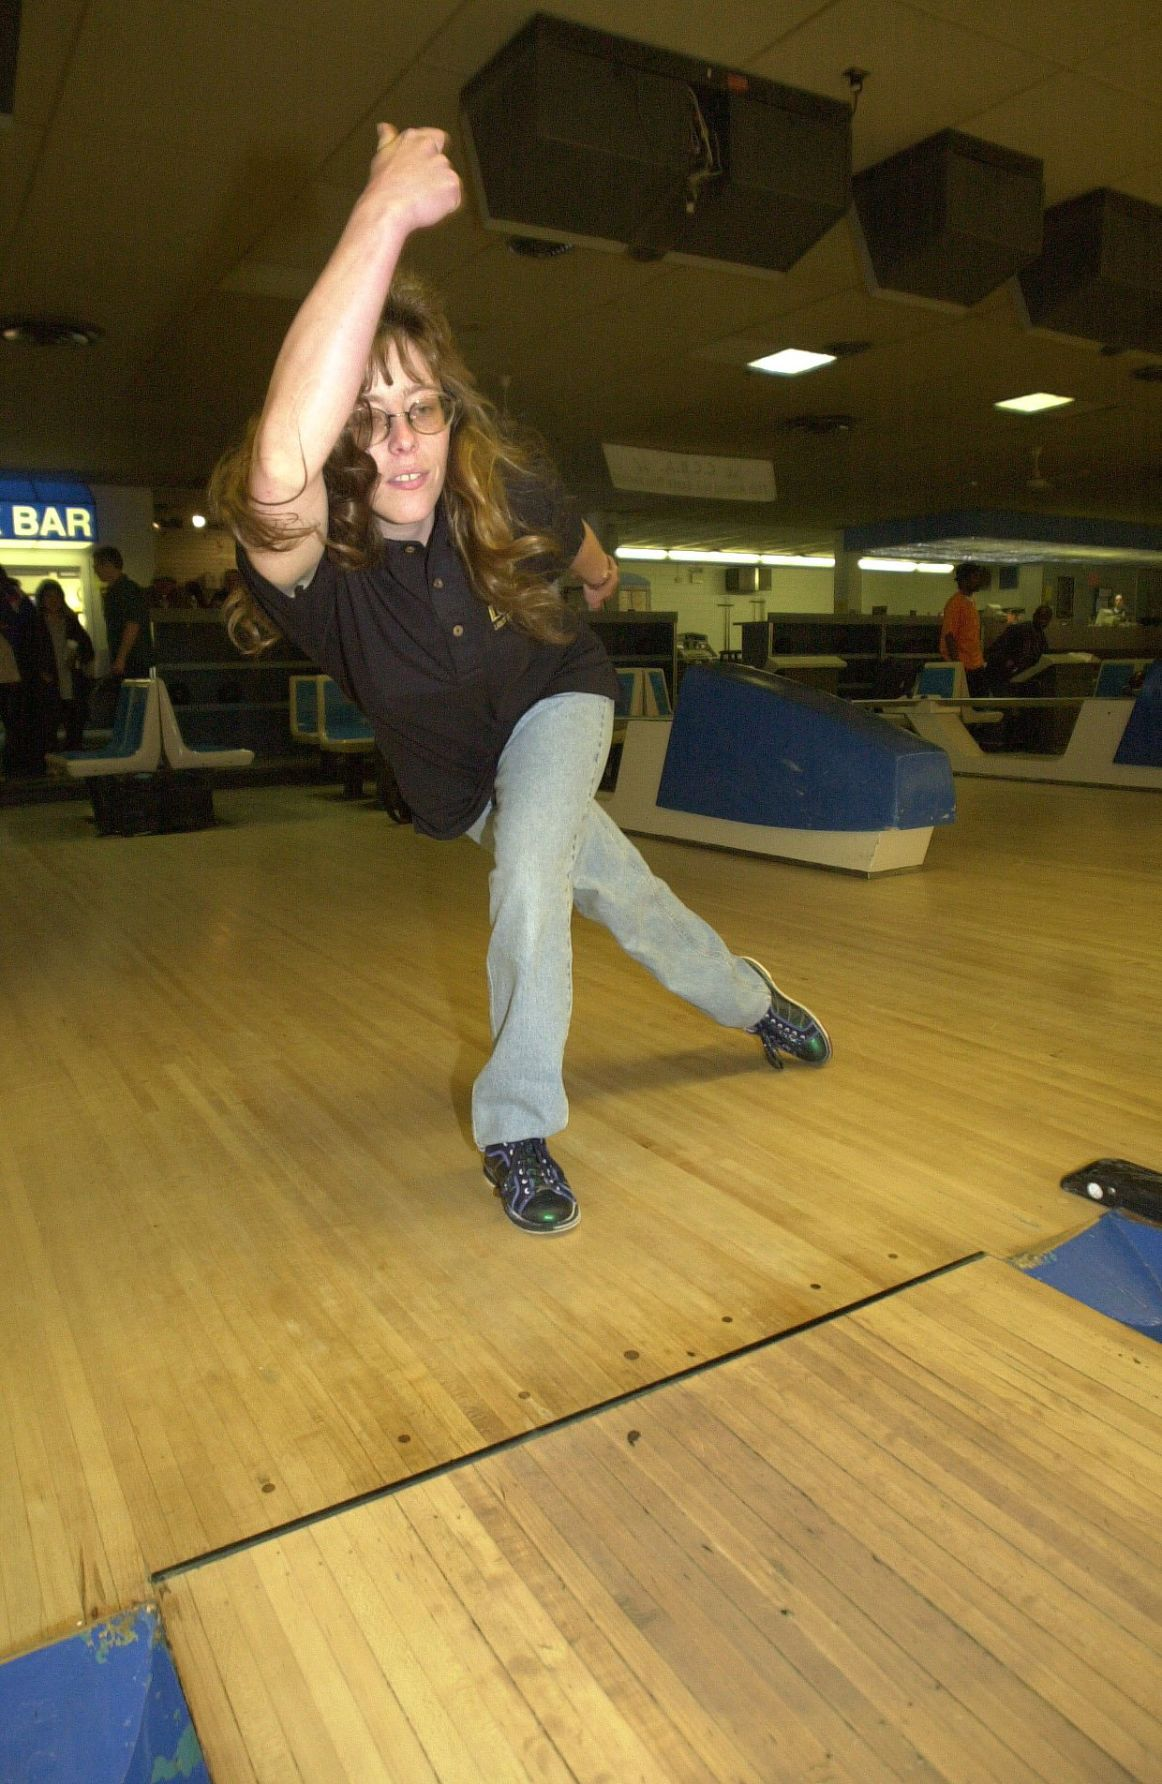 Bowling in South Jersey is fun for all ages | News ...